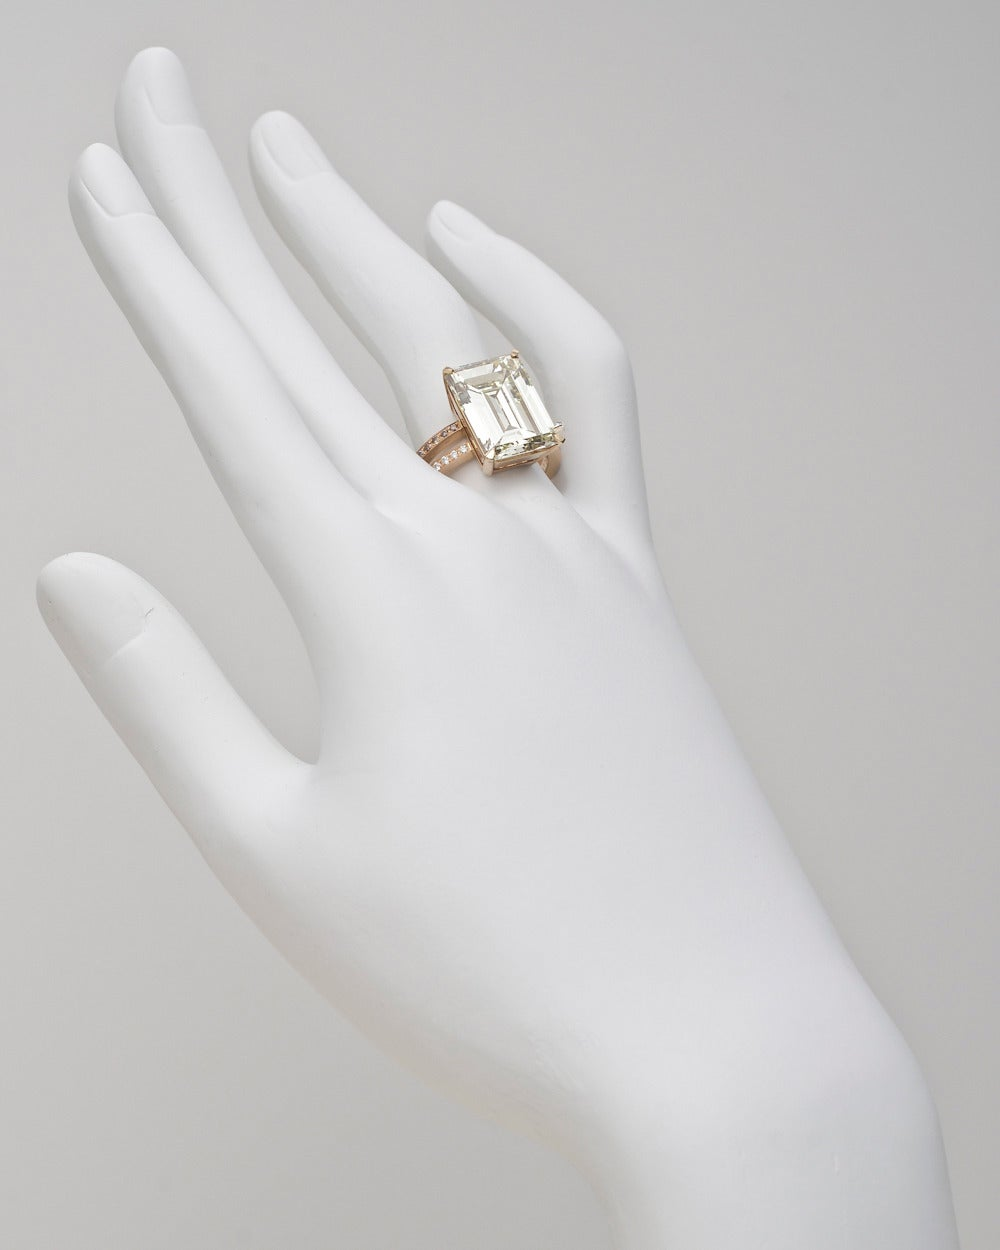 Diamond dress ring, centering on an emerald-cut fancy light brownish yellow diamond weighing 9.54 carats, with partway bead-set diamond split shanks with white and fancy brown-colored diamond accents, mounted in 18k yellow gold. Accompanied by the